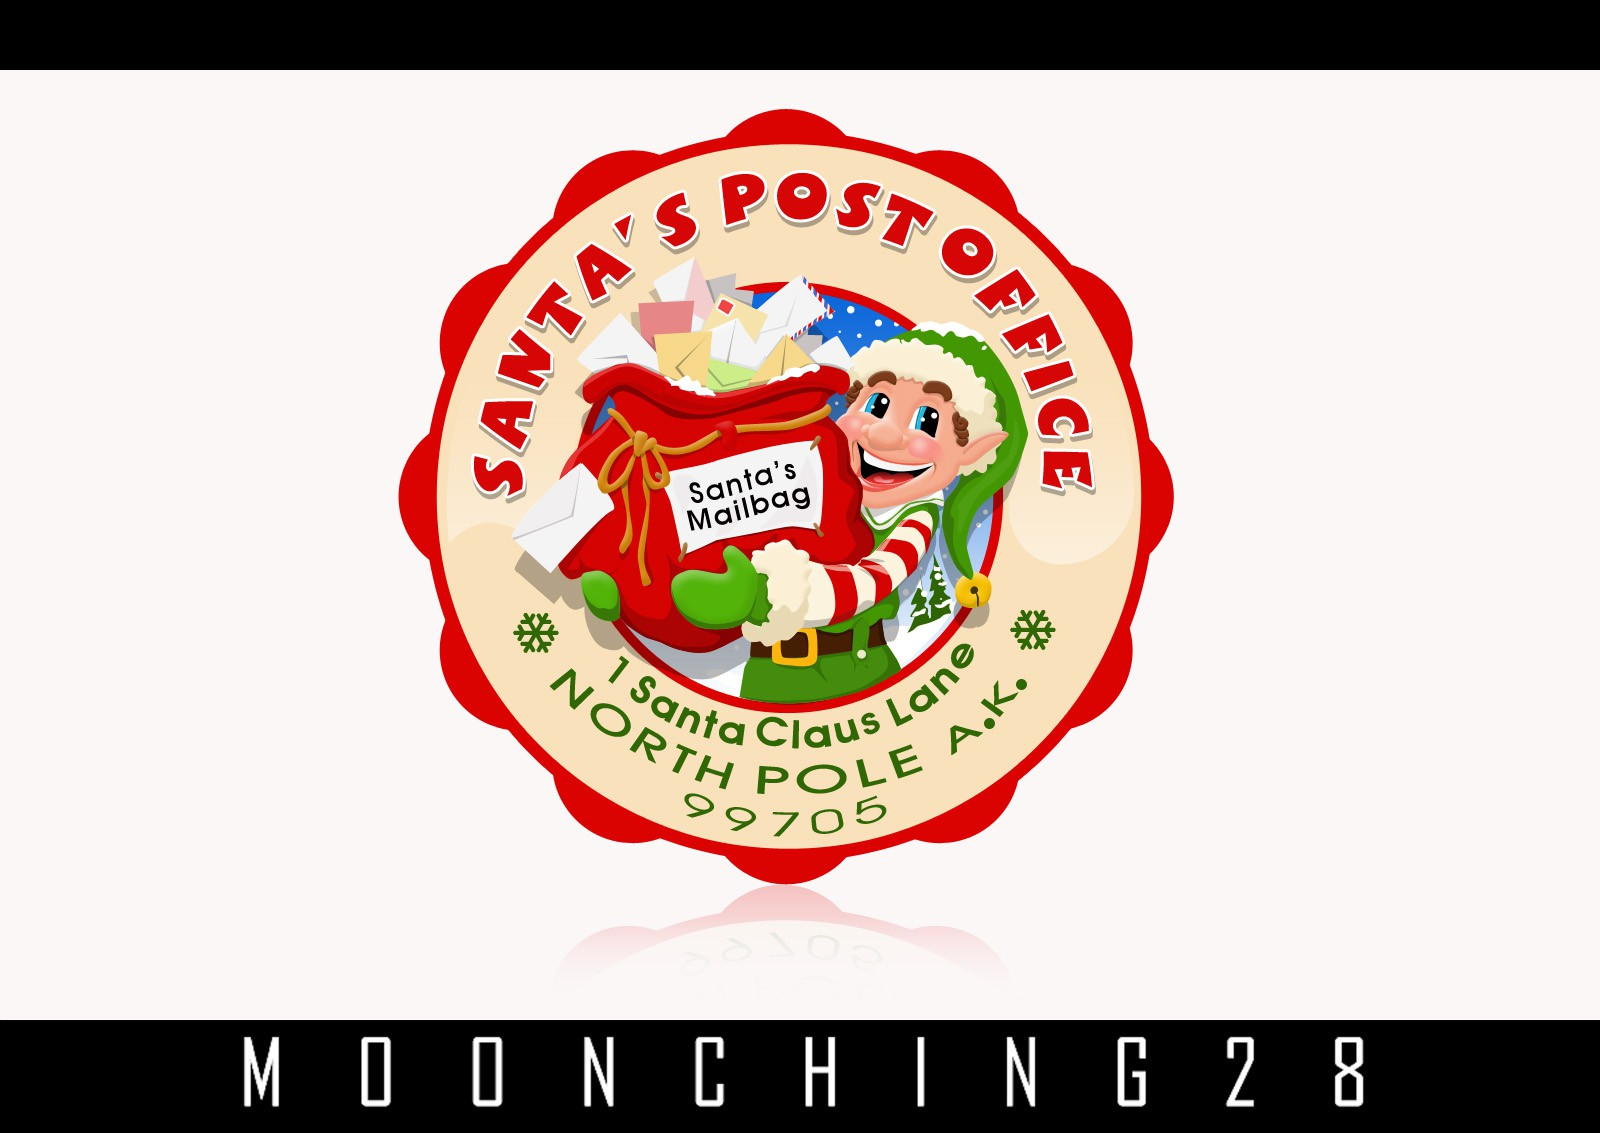 New logo wanted for Santa's Post Office